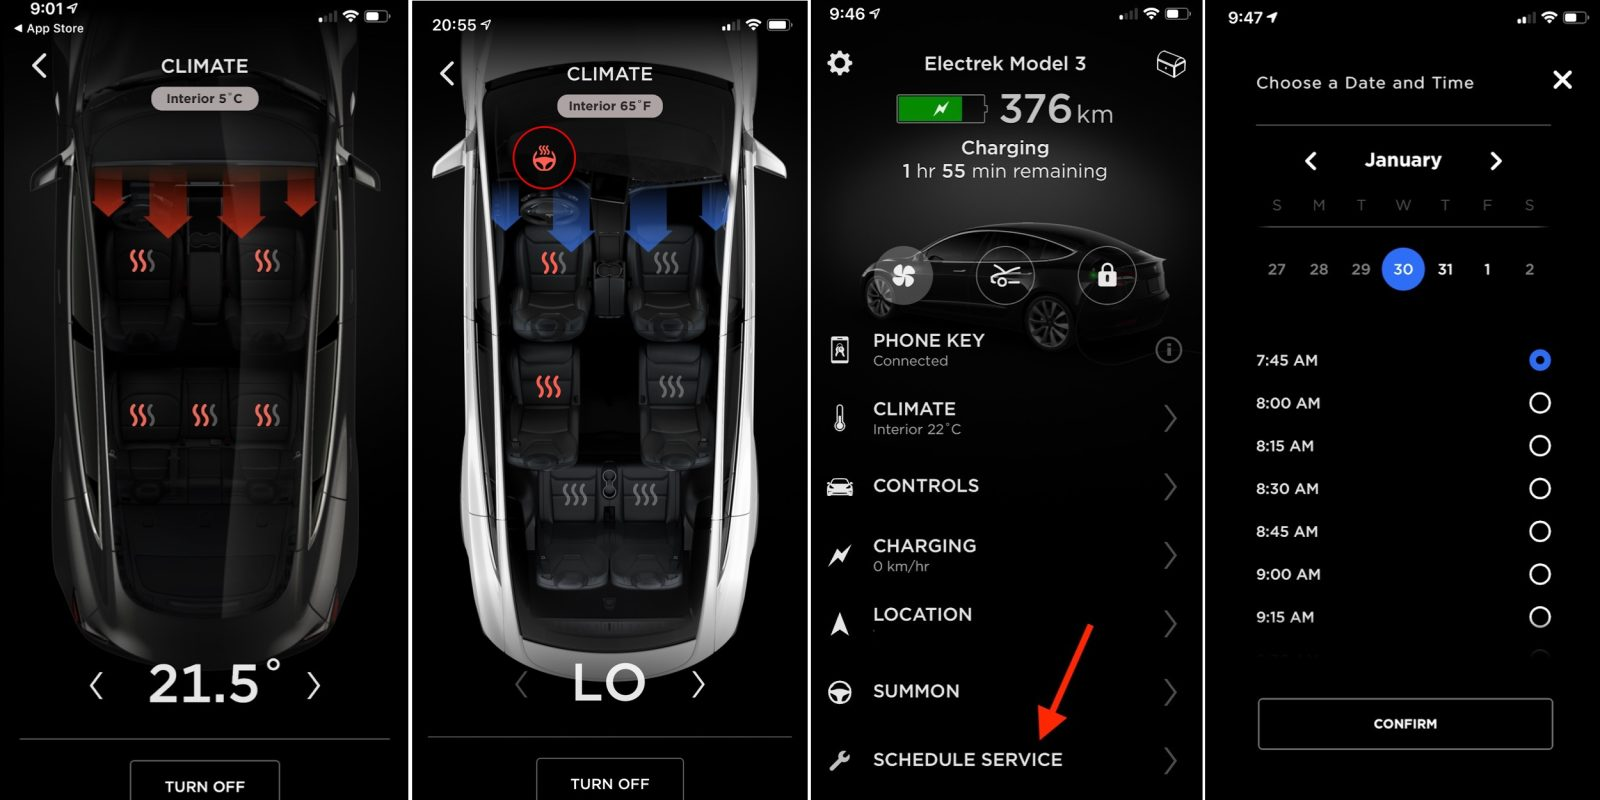 Tesla releases new mobile app update with remote seat